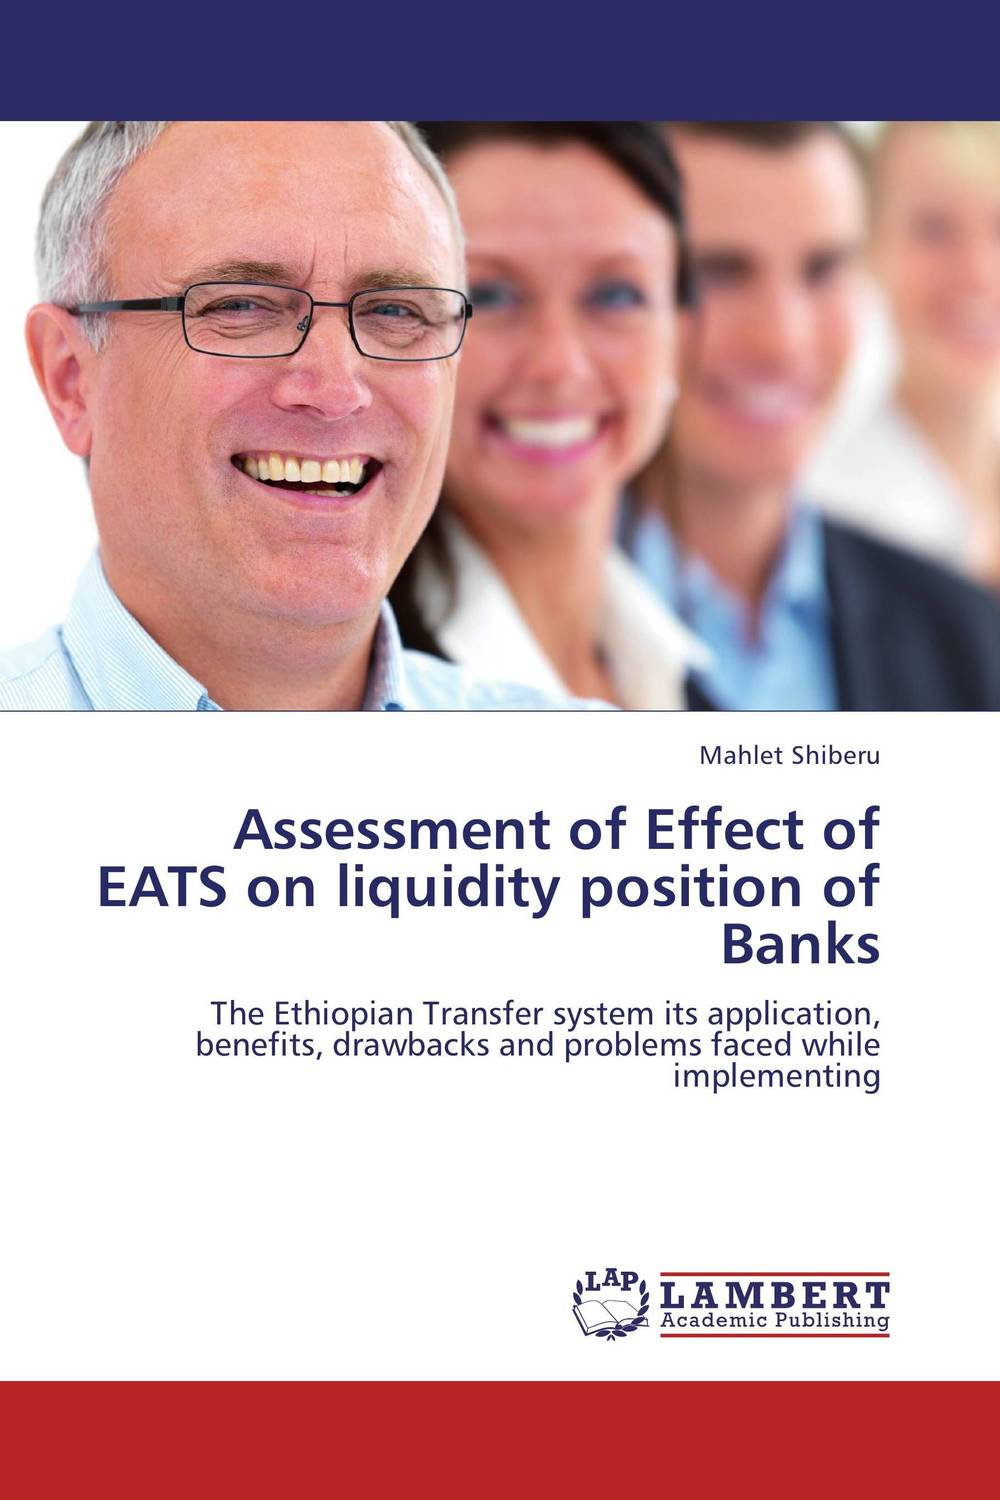 Assessment of Effect of EATS on liquidity position of Banks